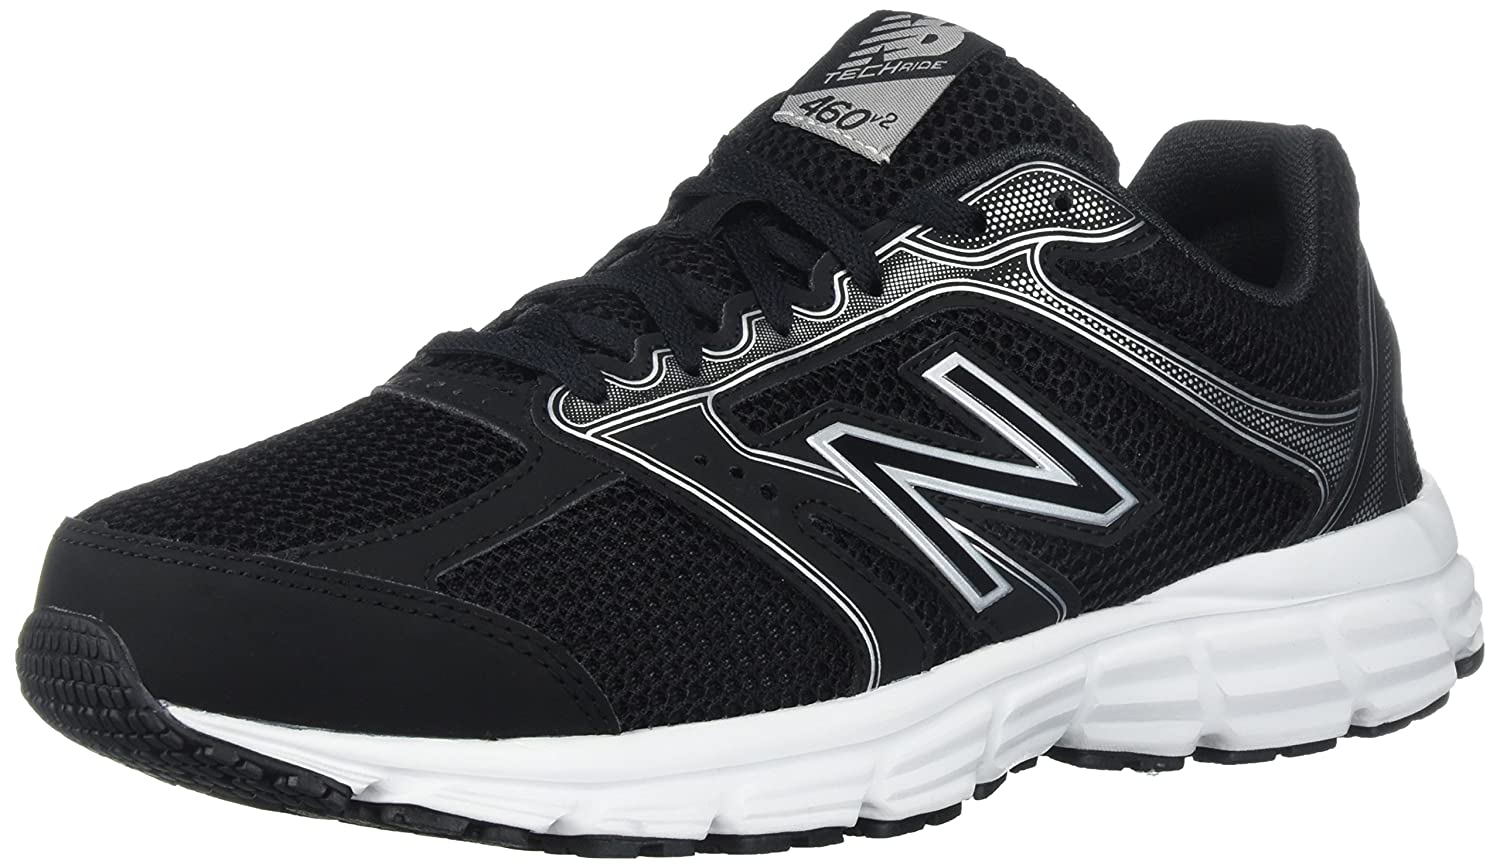 340fbe9b1cbe7 New Balance Men's 460v2 Running Shoes: Amazon.co.uk: Shoes & Bags